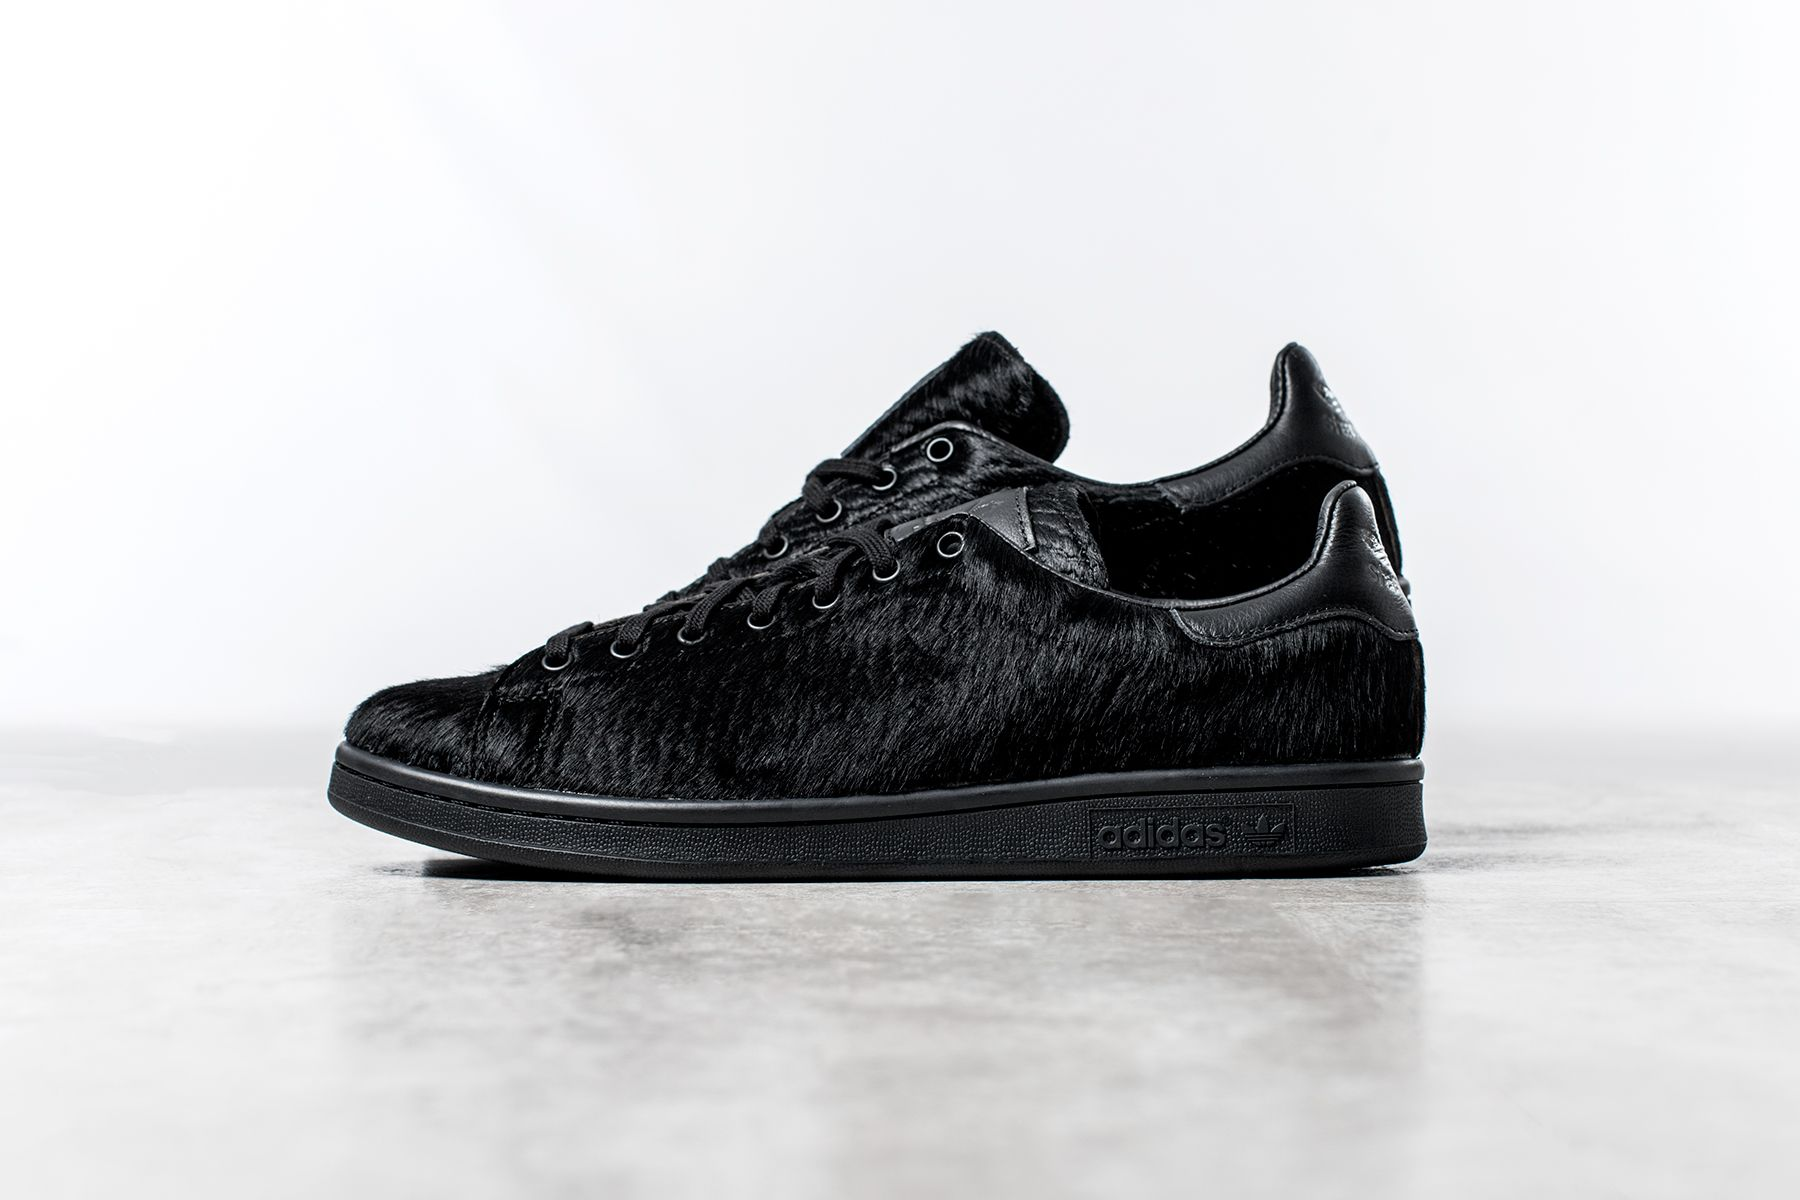 outlet store 3815b 9fc80 Opening Ceremony x adidas Stan Smith Pack